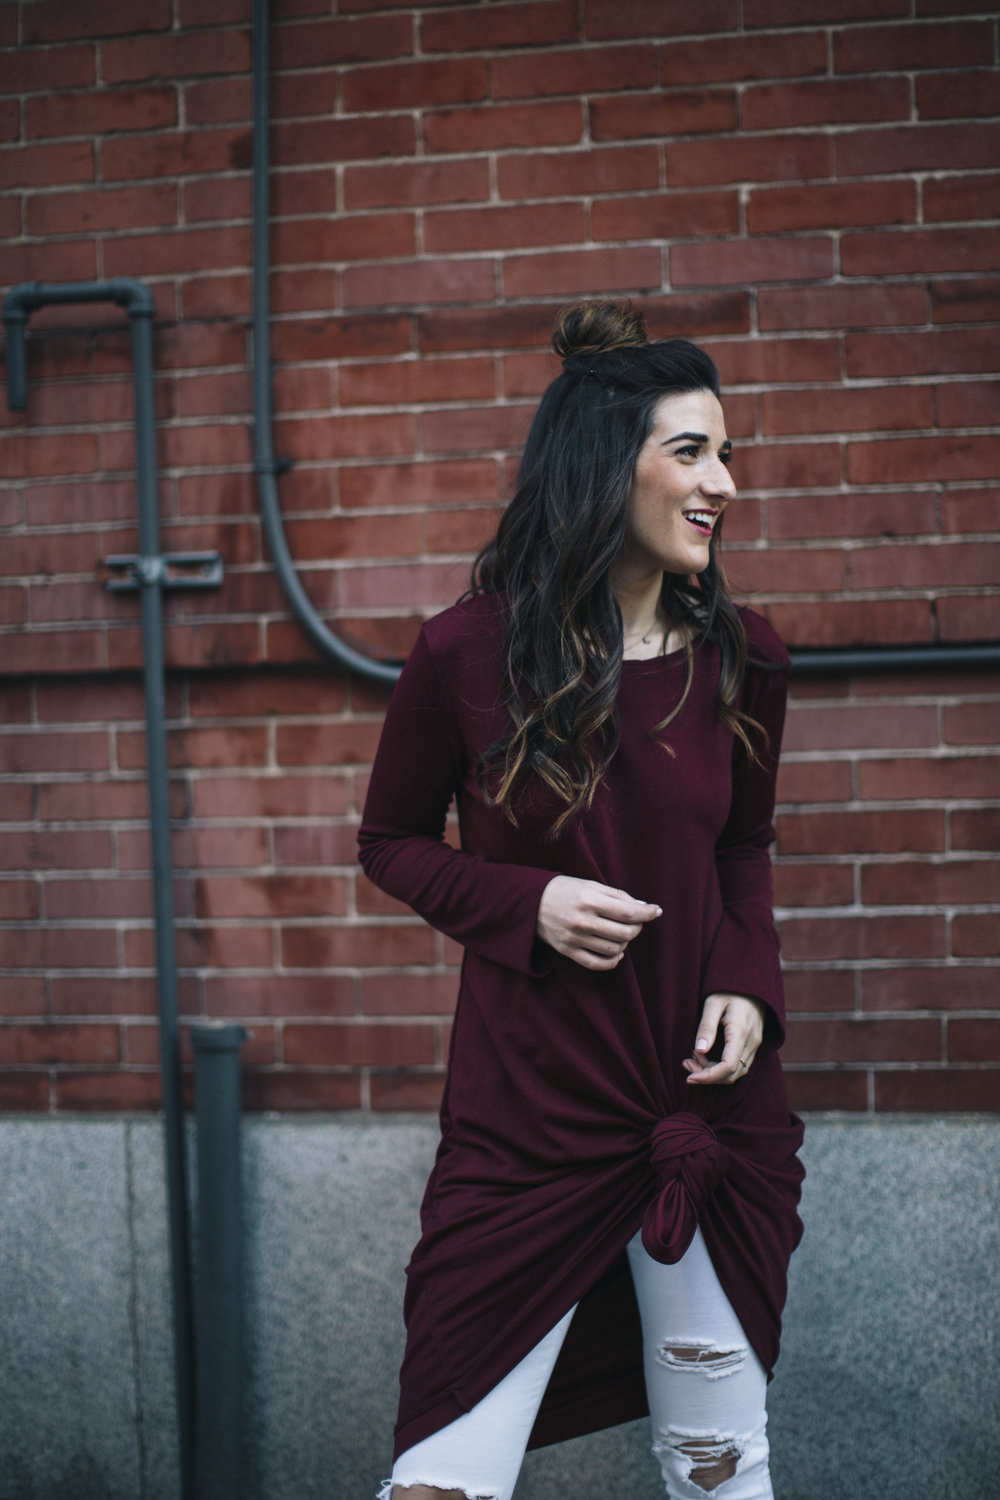 Knotted Dress + Ripped White Jeans 4 Ways To Build Connections Louboutins & Love Fashion Blog Esther Santer NYC Street Style Blogger Outfit OOTD Trendy Red Maroon Burgundy Winter Color Leopard Coach Shoes Booties Pants Girl Women Bun Topknot Hair Wear.jpg